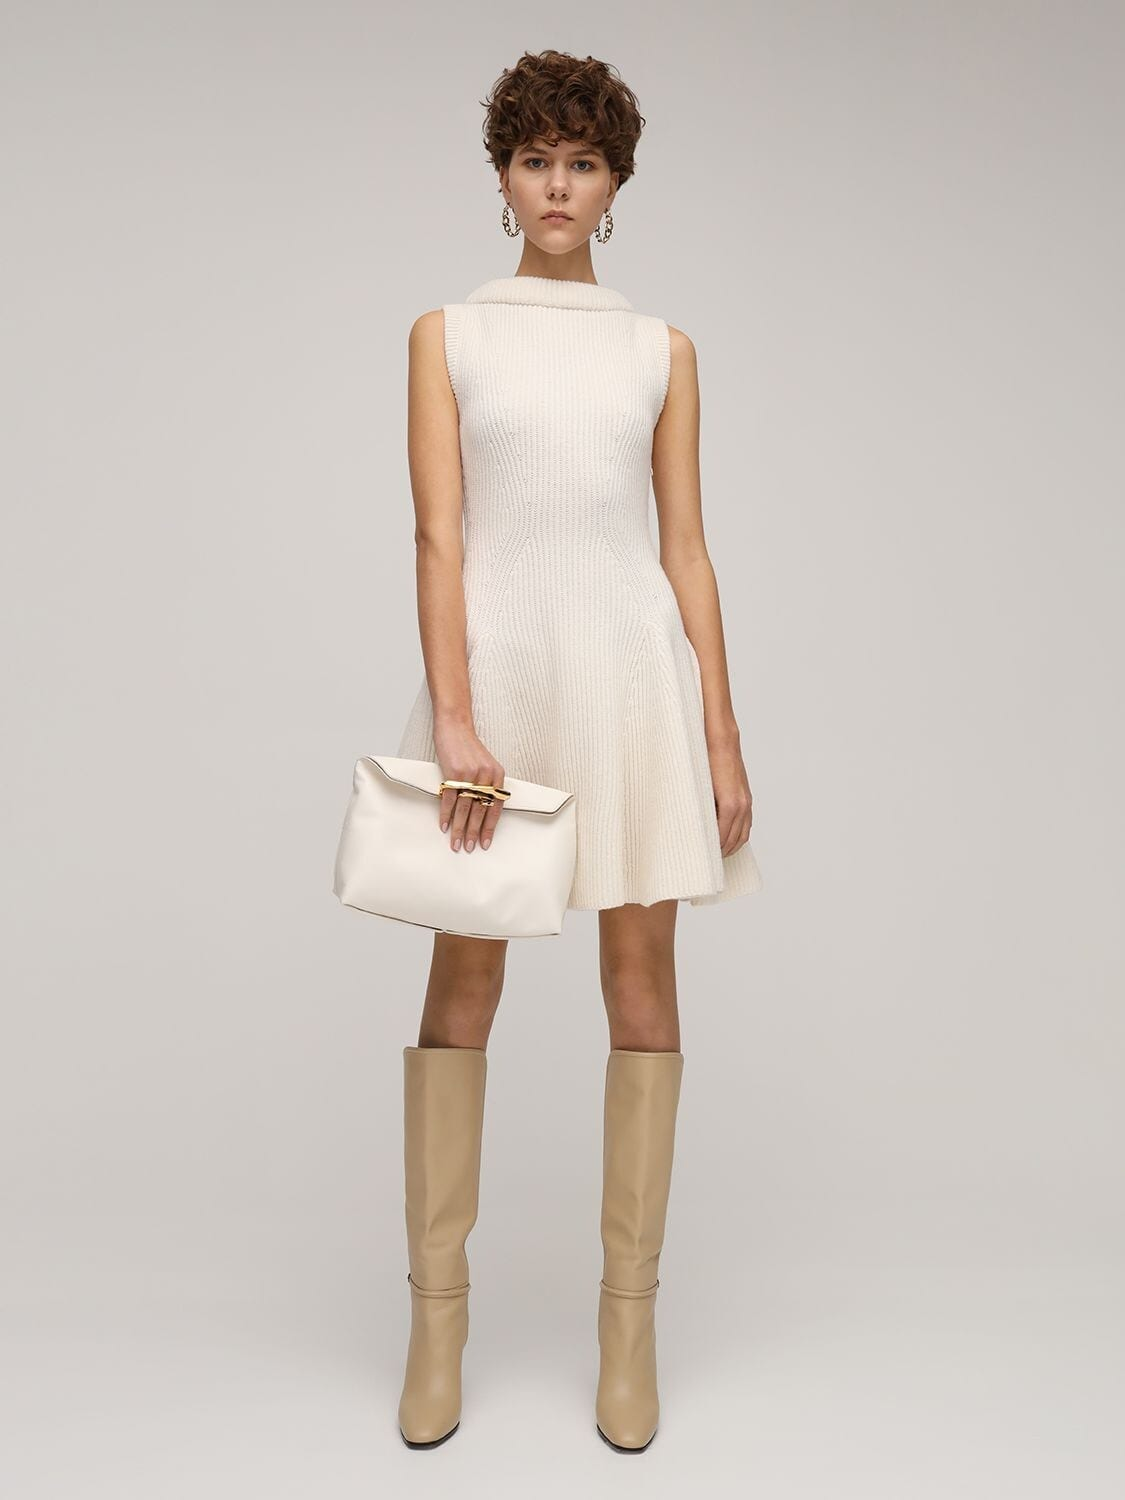 ALEXANDER MCQUEEN Pleated Wool Knit Mini Dress